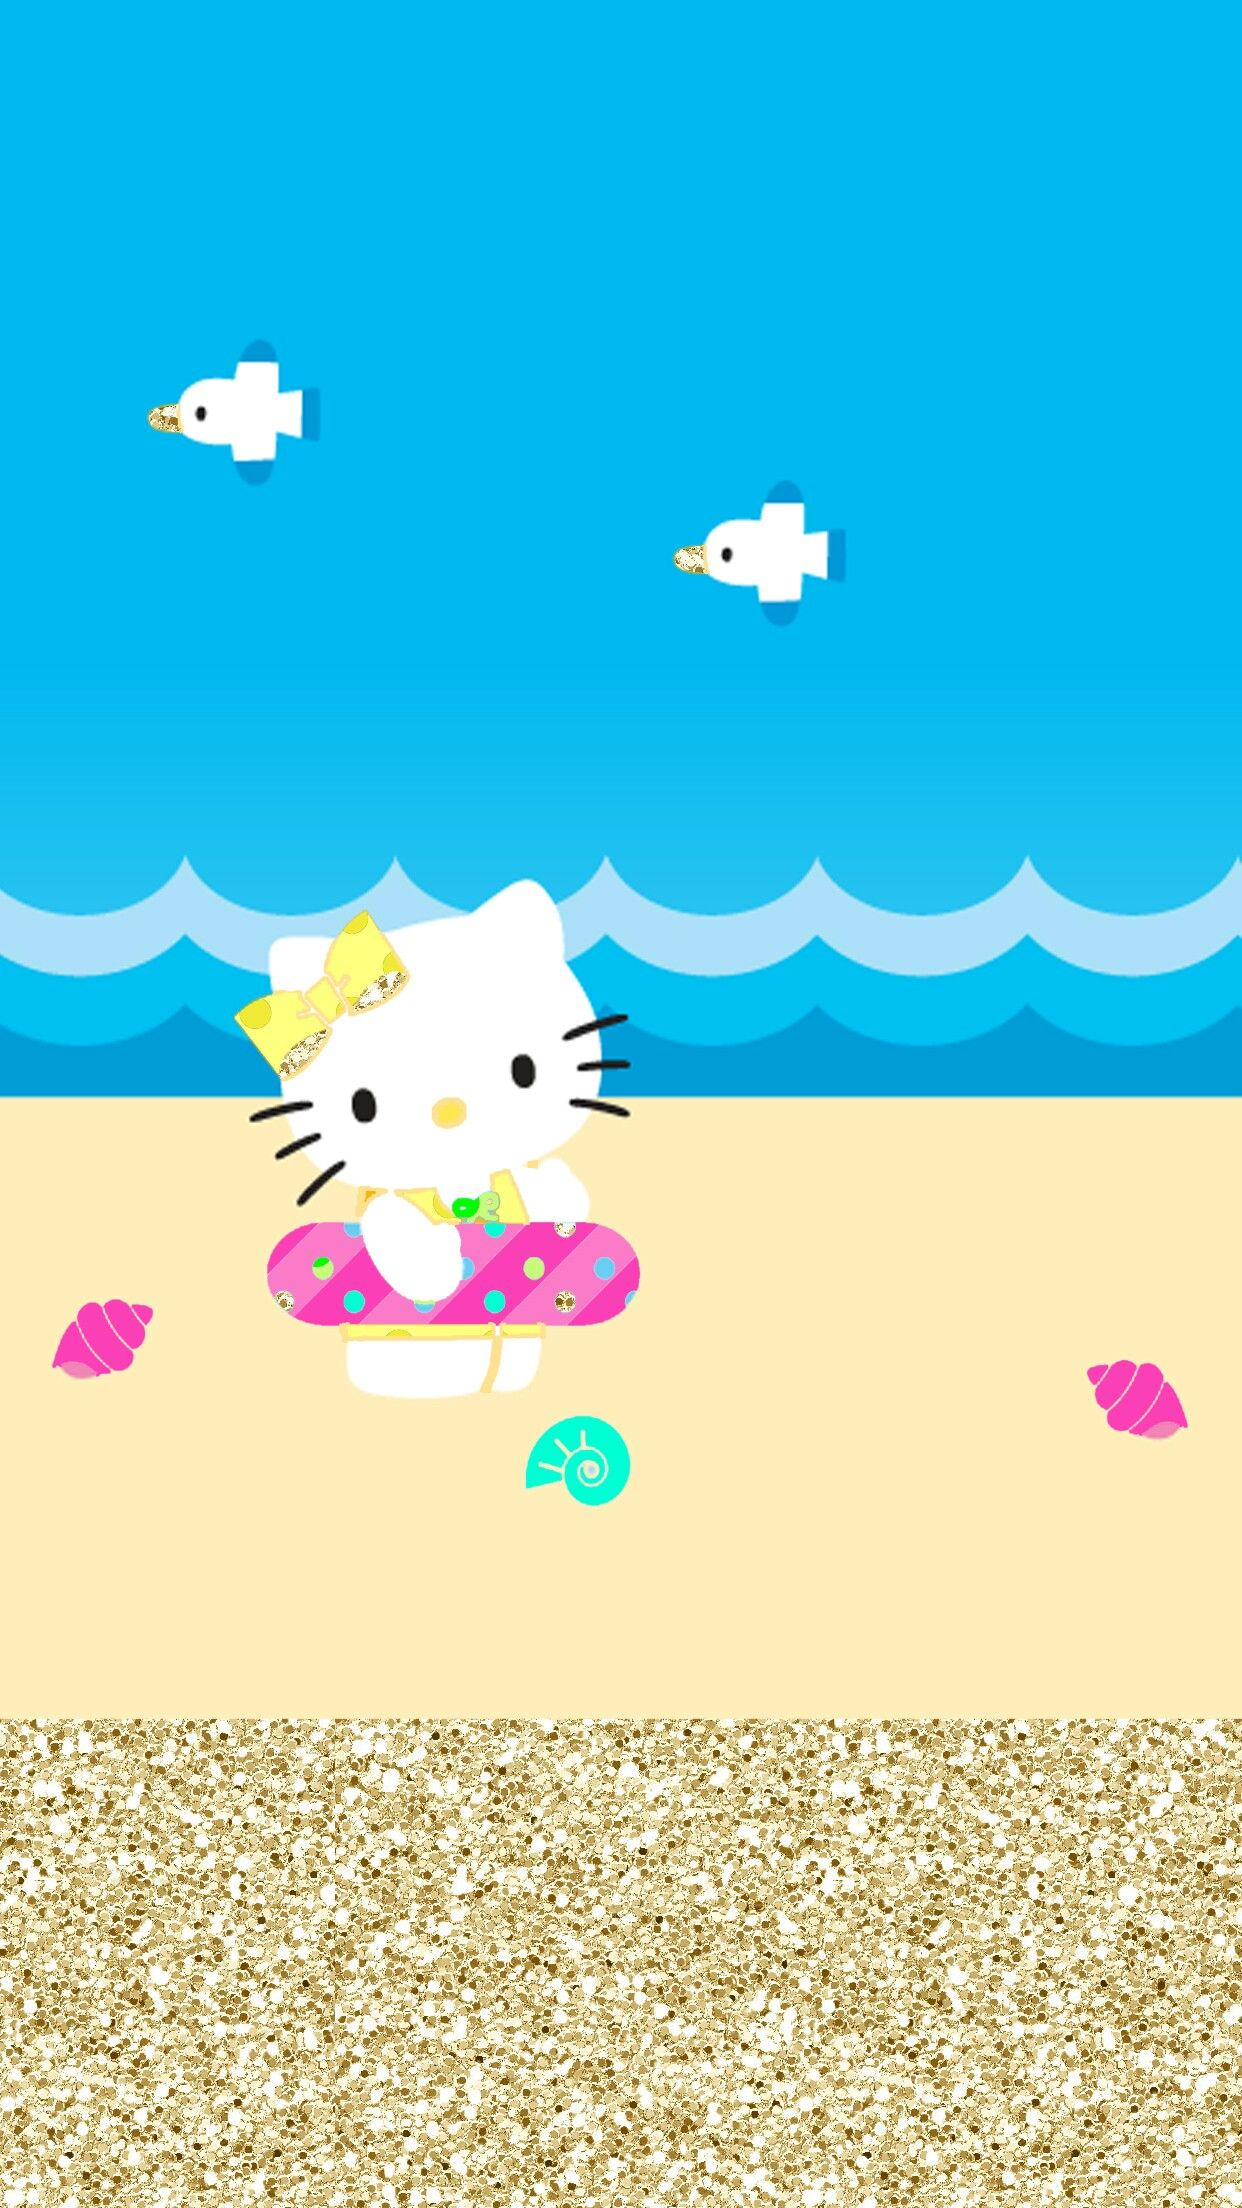 Homescreen, Wallpapers, Wallpaper Backgrounds, Patterns, Beach, Hello Summer, Hello Kitty,